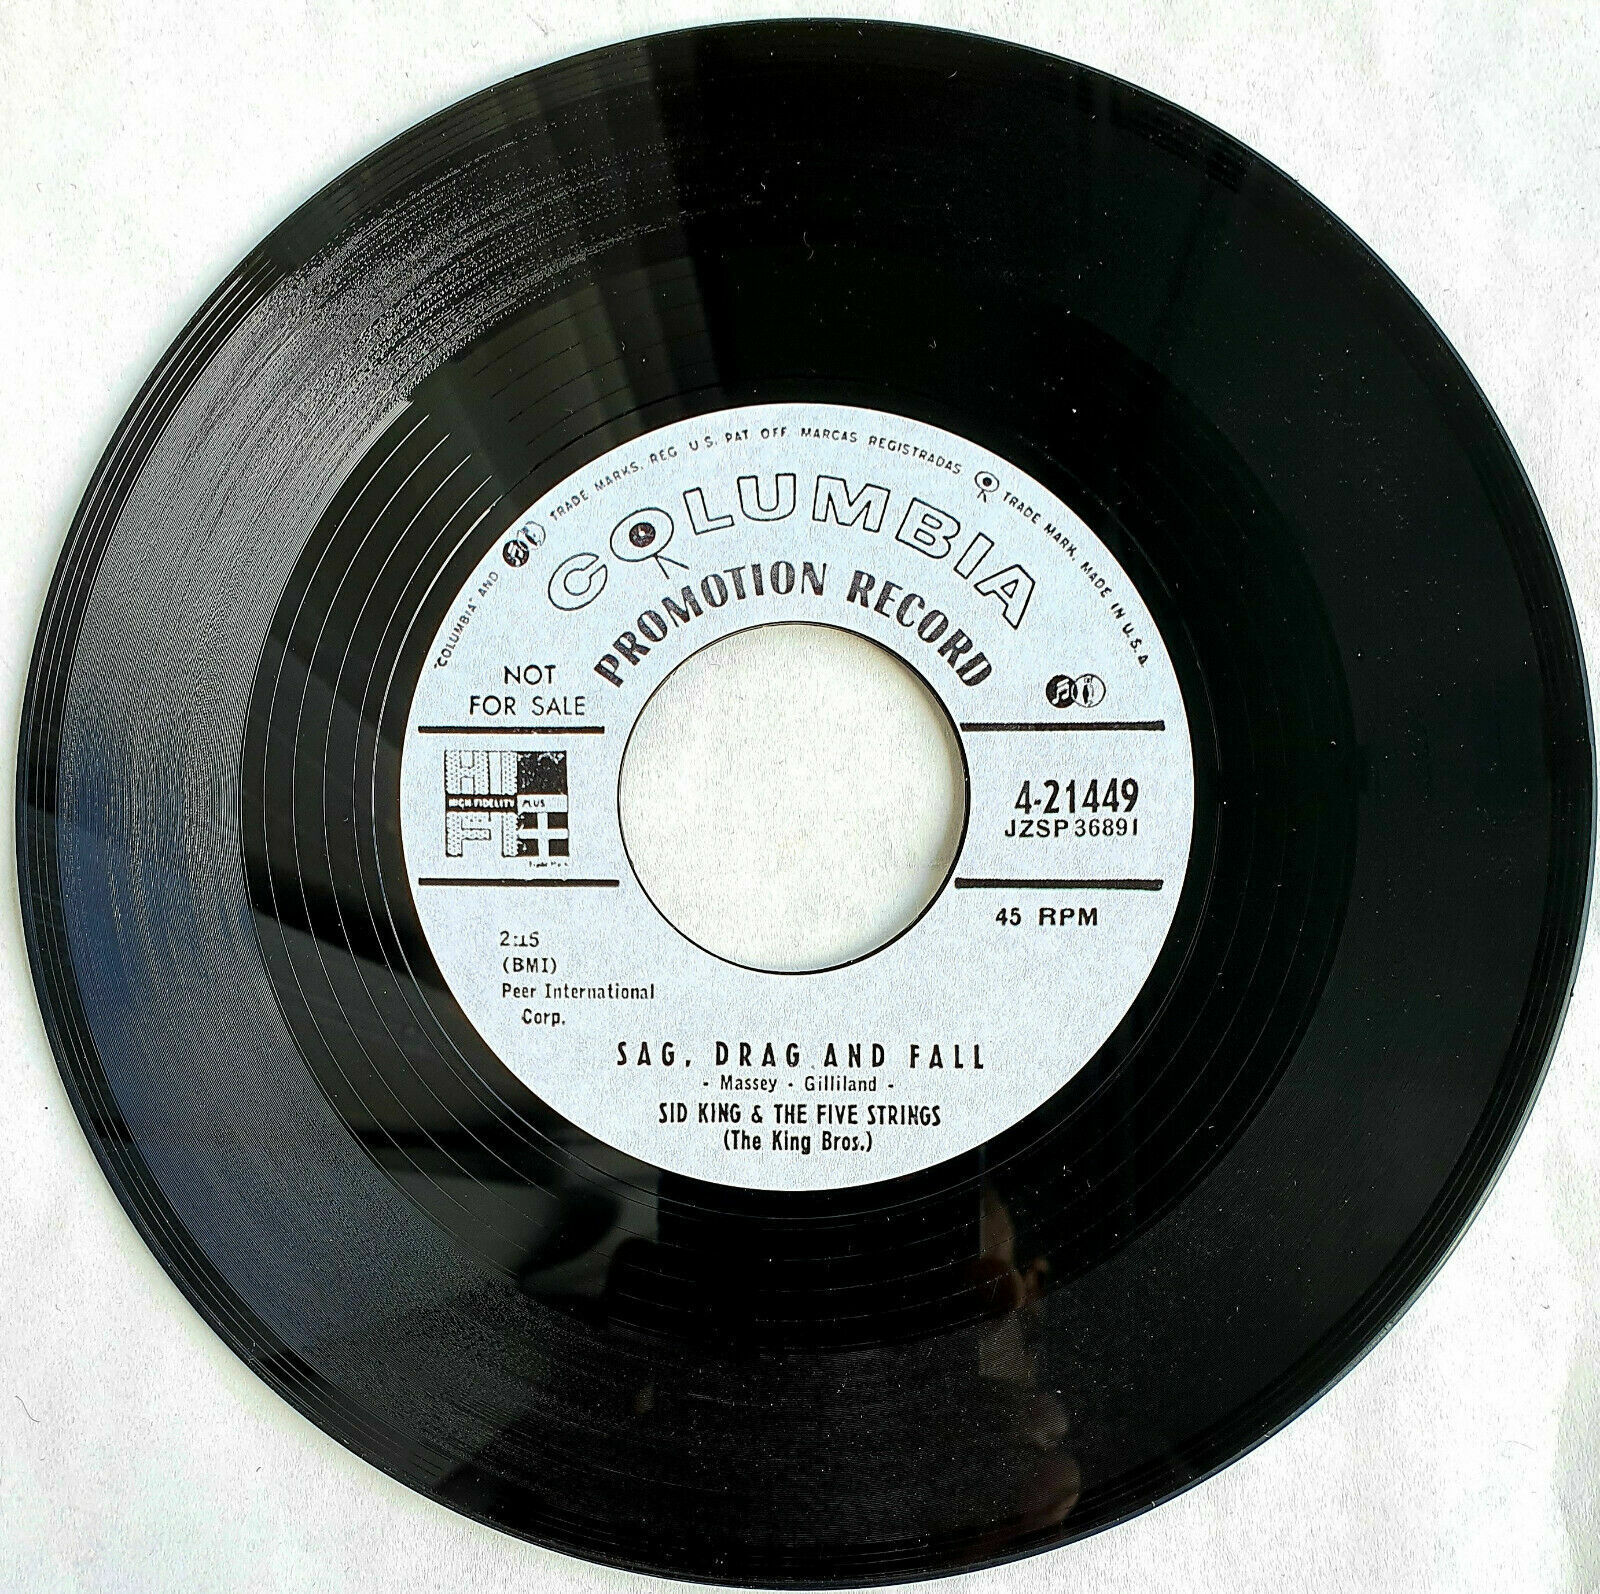 Sid King & The Five Strings - Sag Drag And Fall       Rockabilly  45rpm